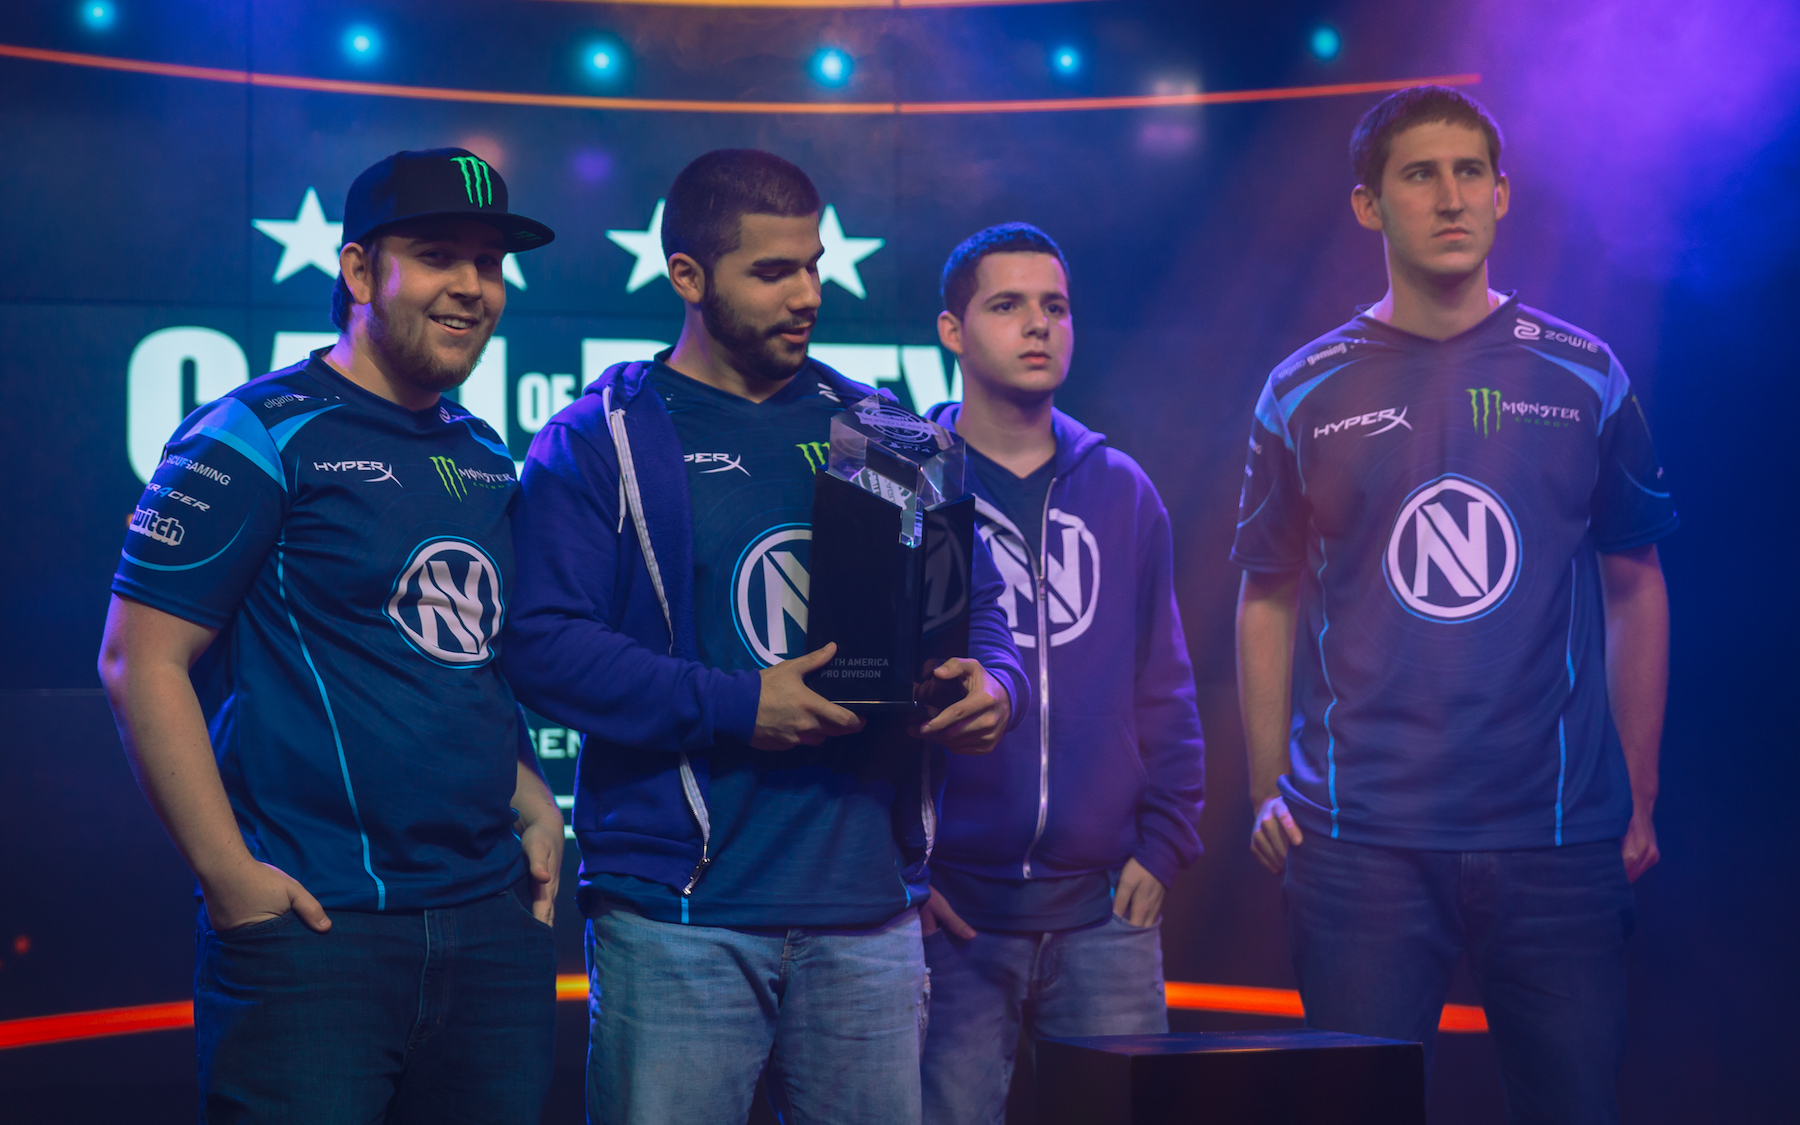 EnvyUs cemented its place as the No. 1 U.S. team.